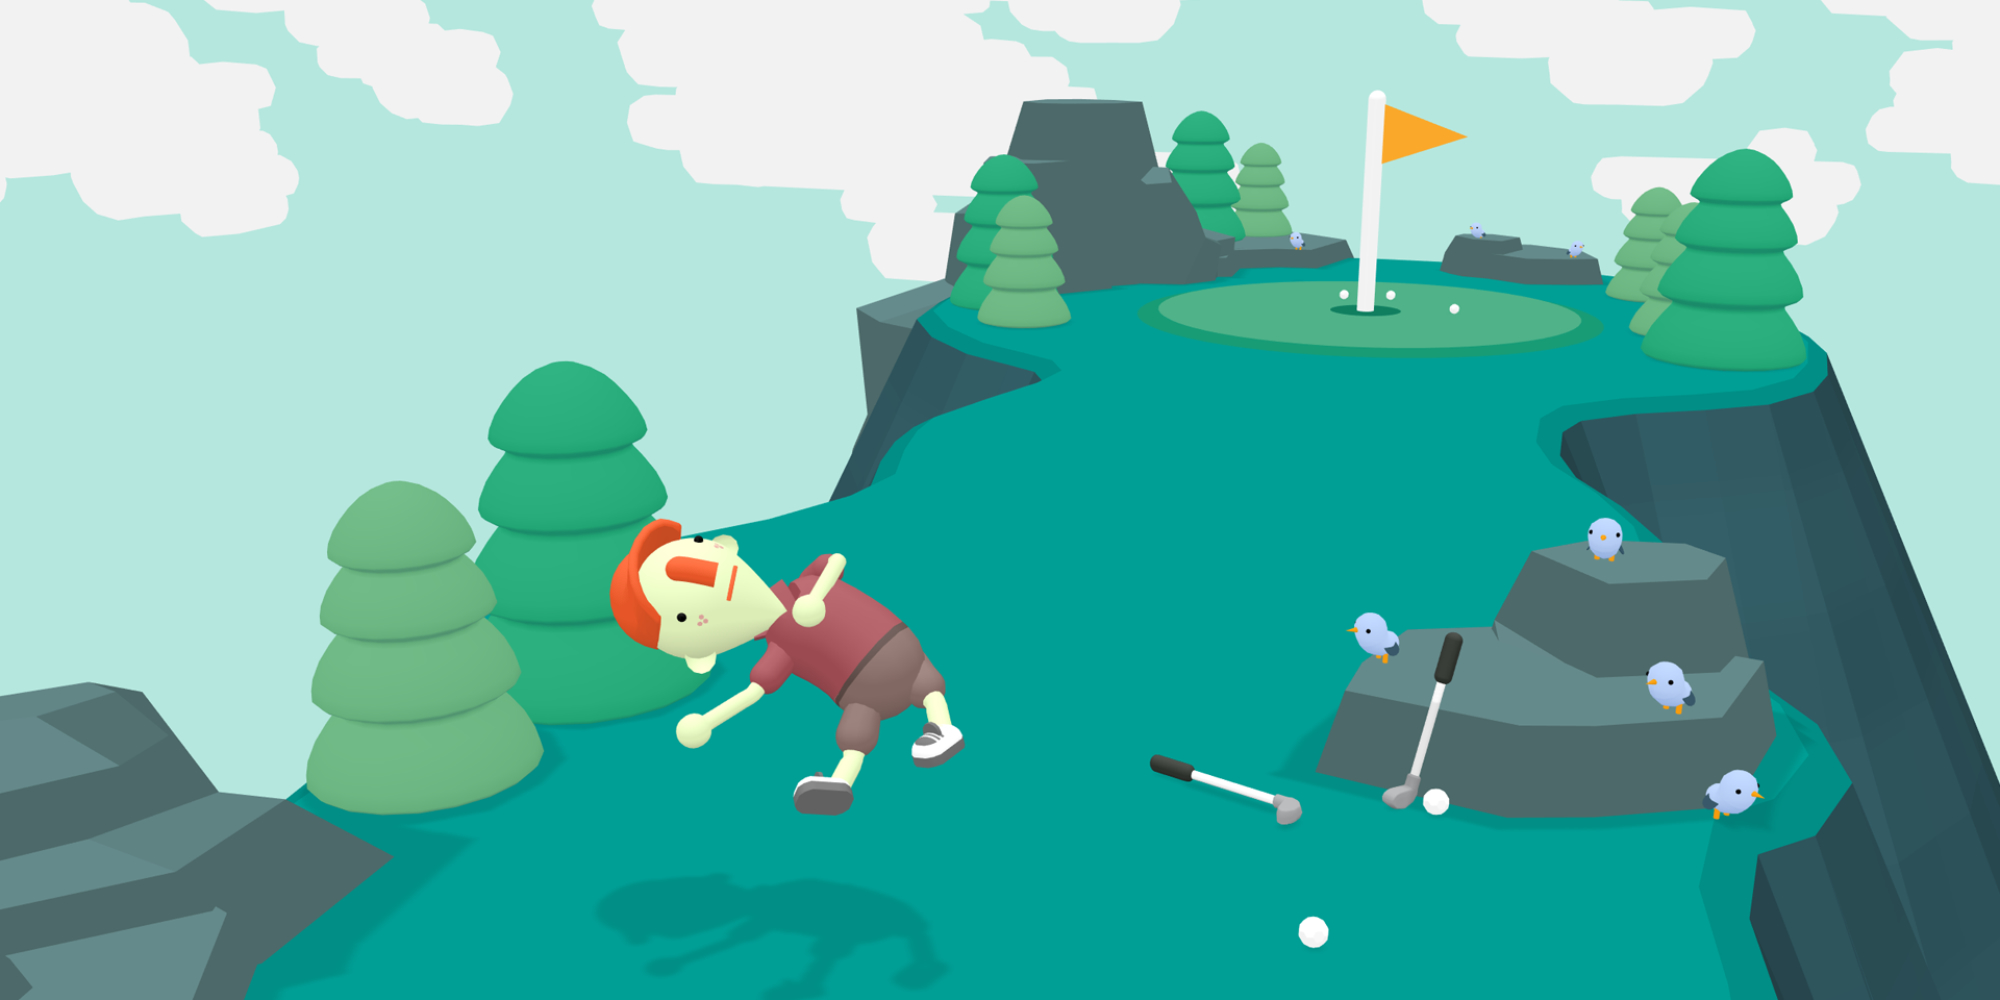 WHAT THE GOLF? lands on Nintendo Switch later this month with Party mode, more